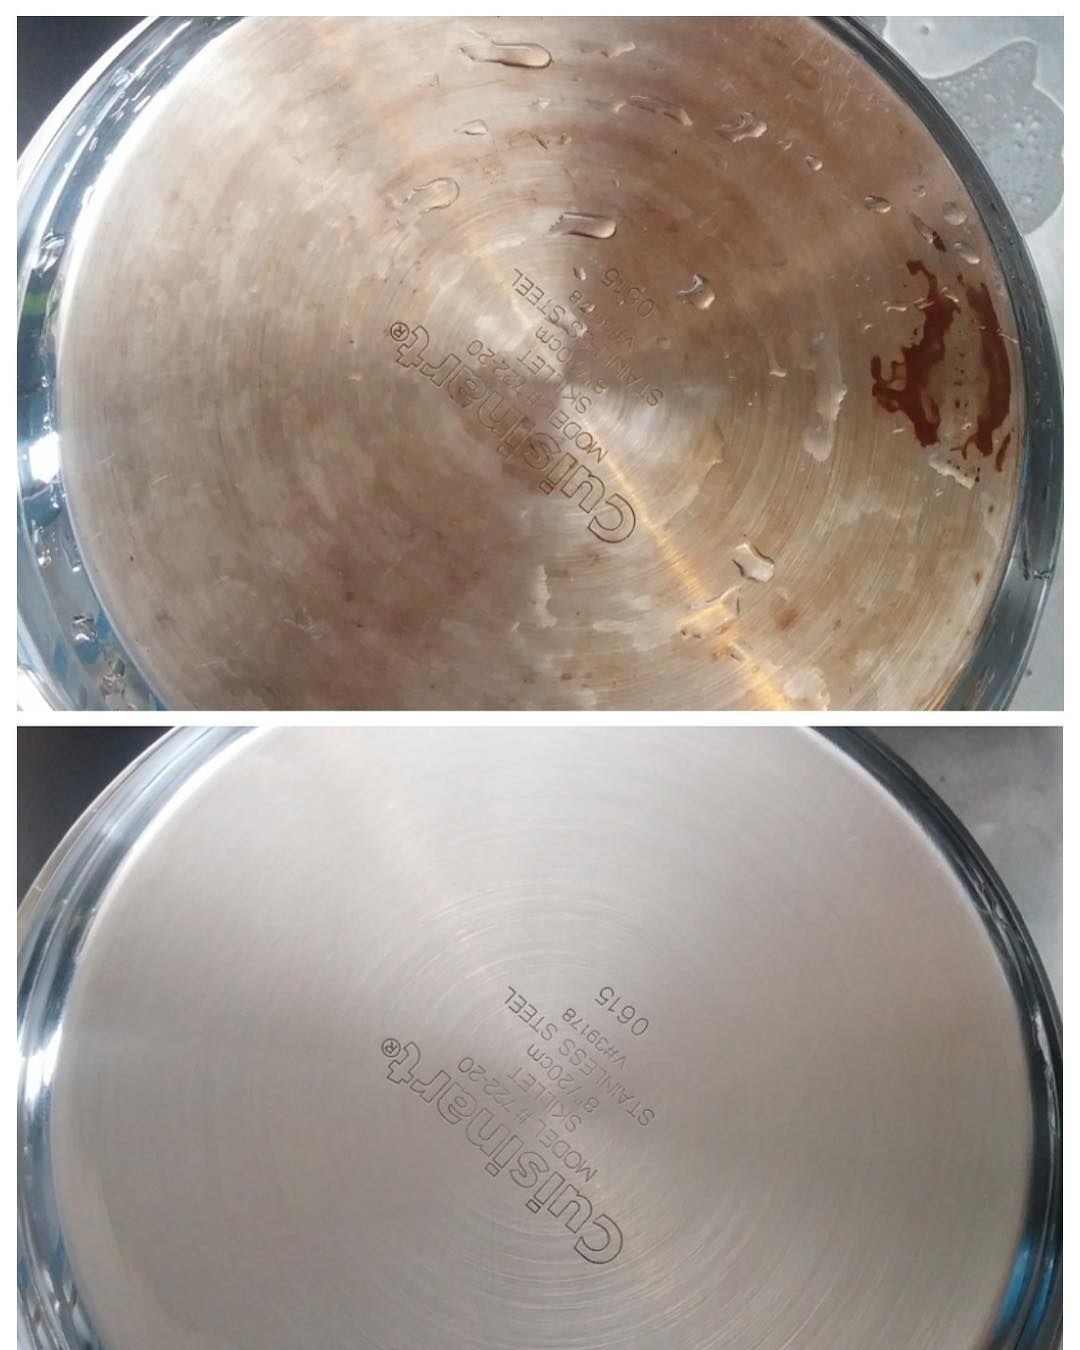 Before-and-after of a rusty pan completely cleaned by the powder